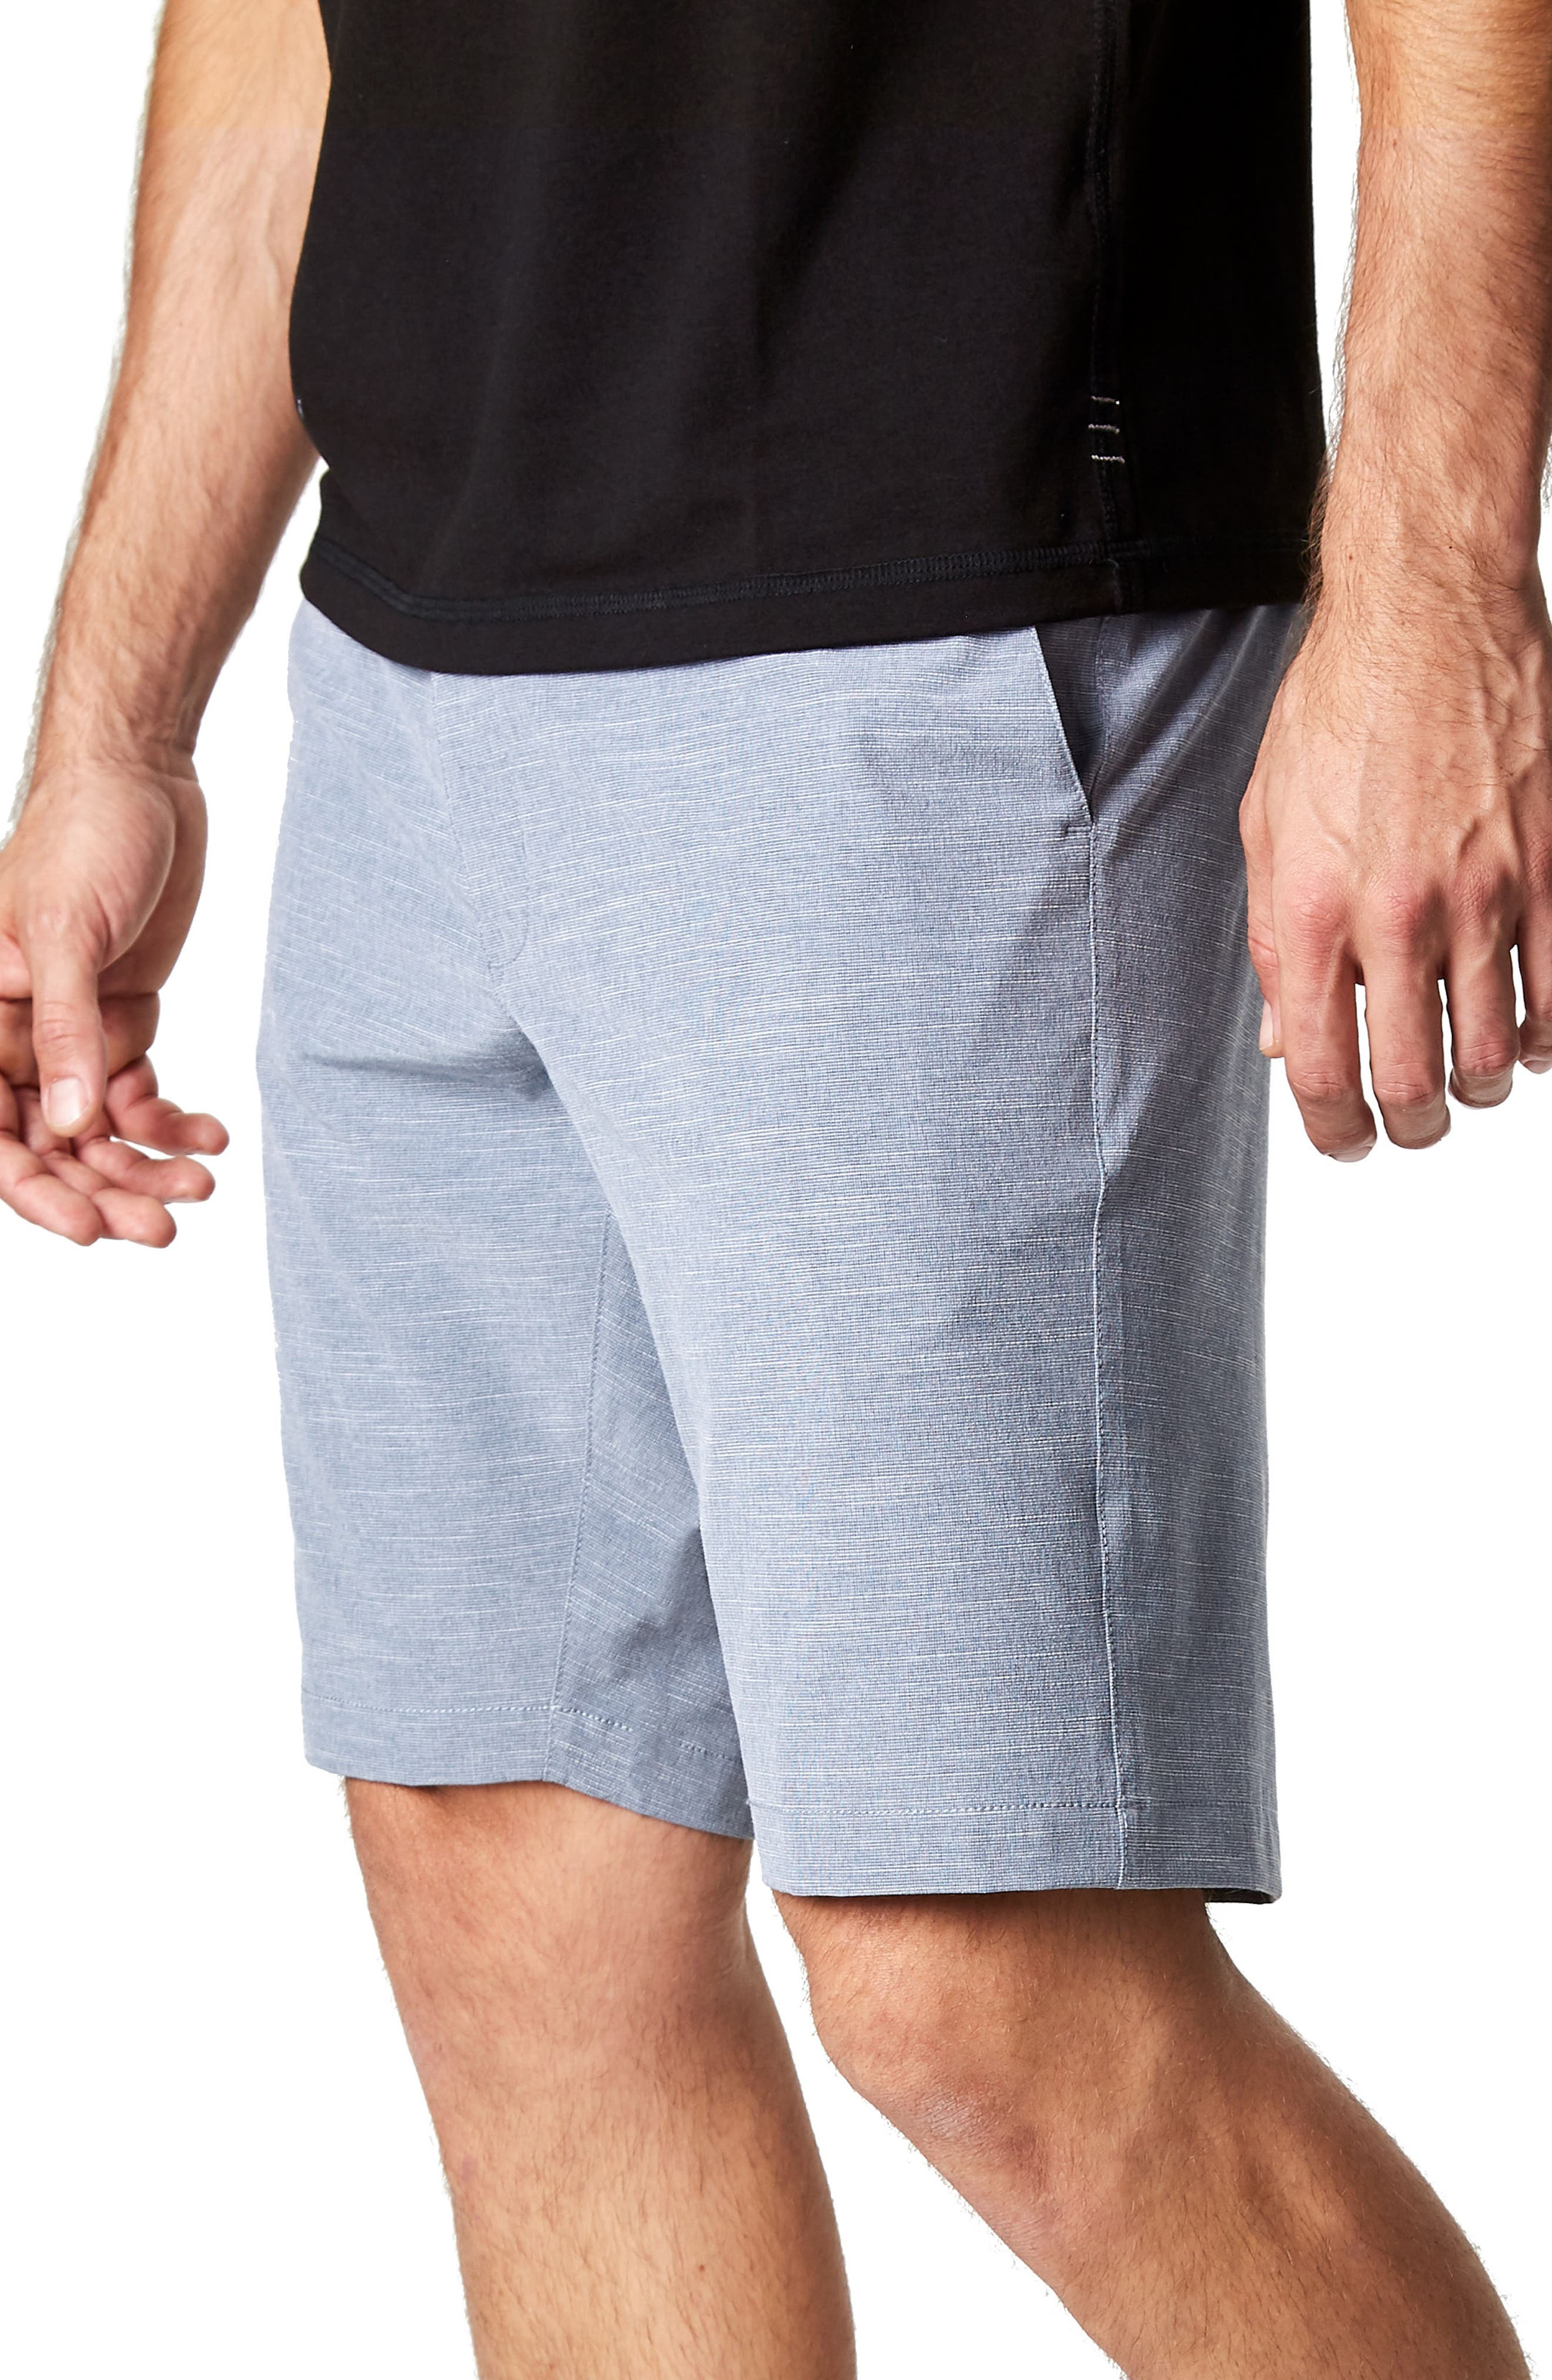 Existence Stretch Shorts,                             Alternate thumbnail 9, color,